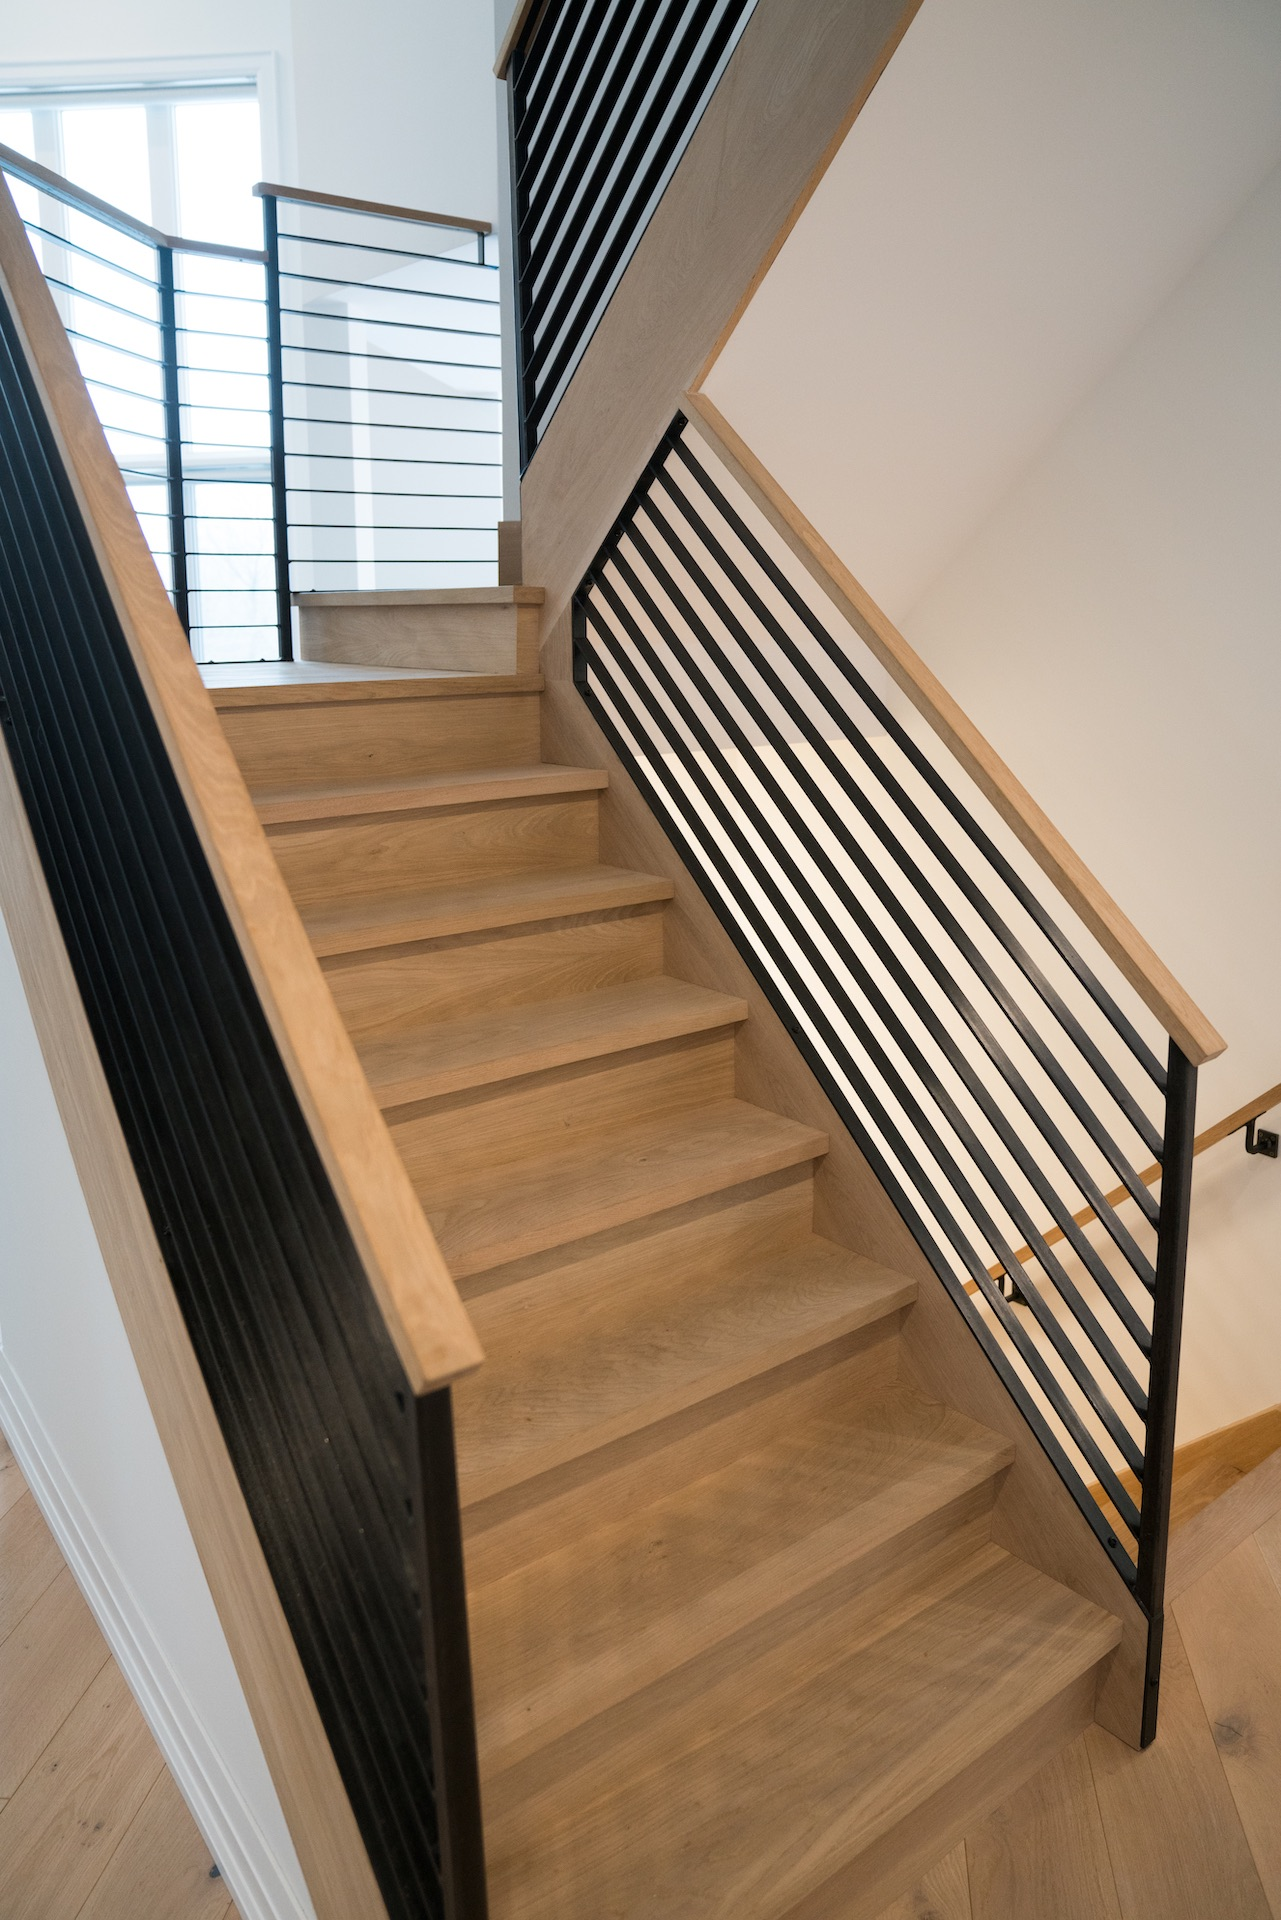 Wood stairs